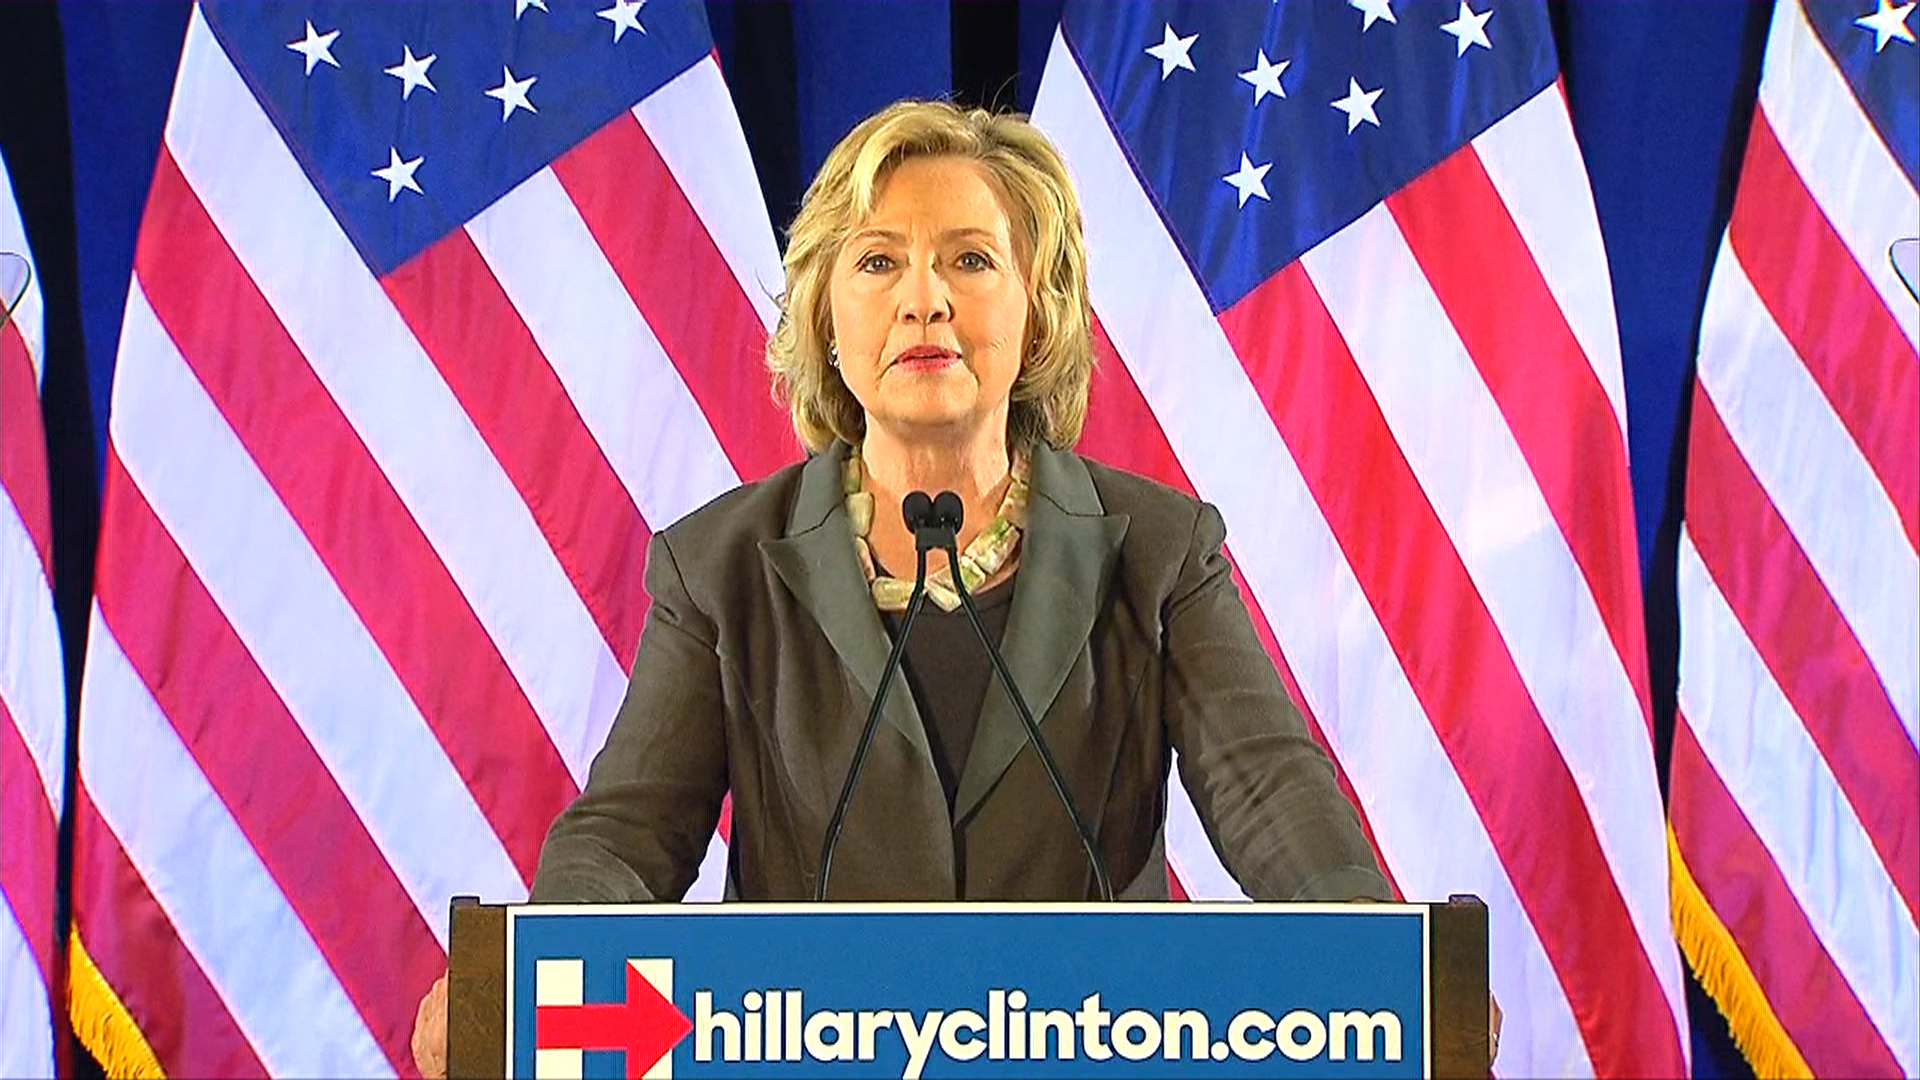 Hillary Clinton on 'inaccuracies' about...